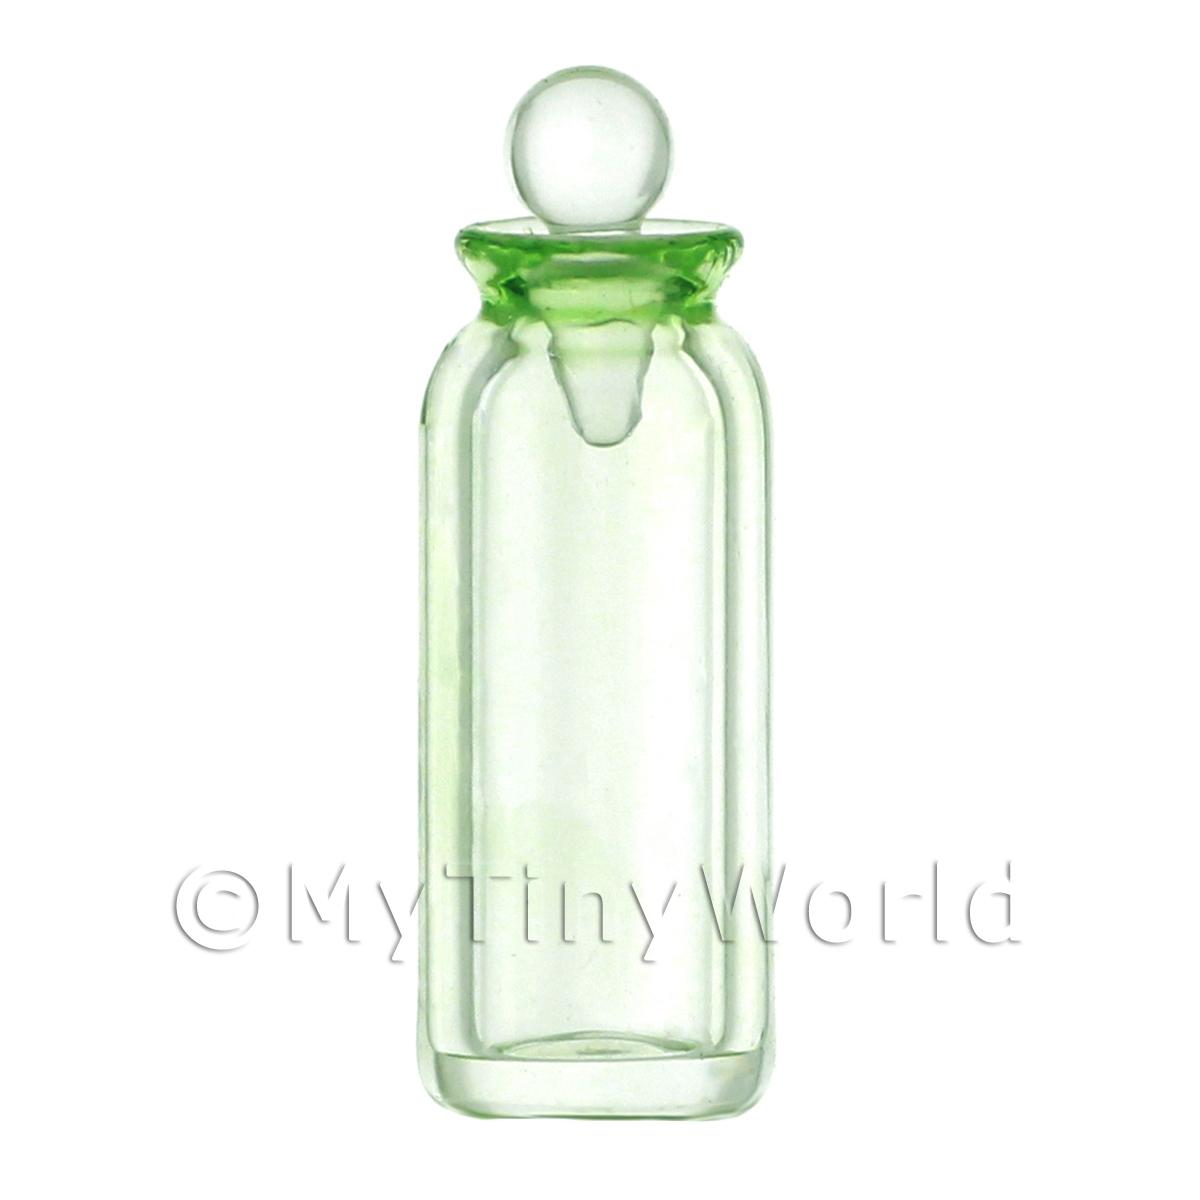 Dolls House Miniature Small Green Glass Apothecary Bottle